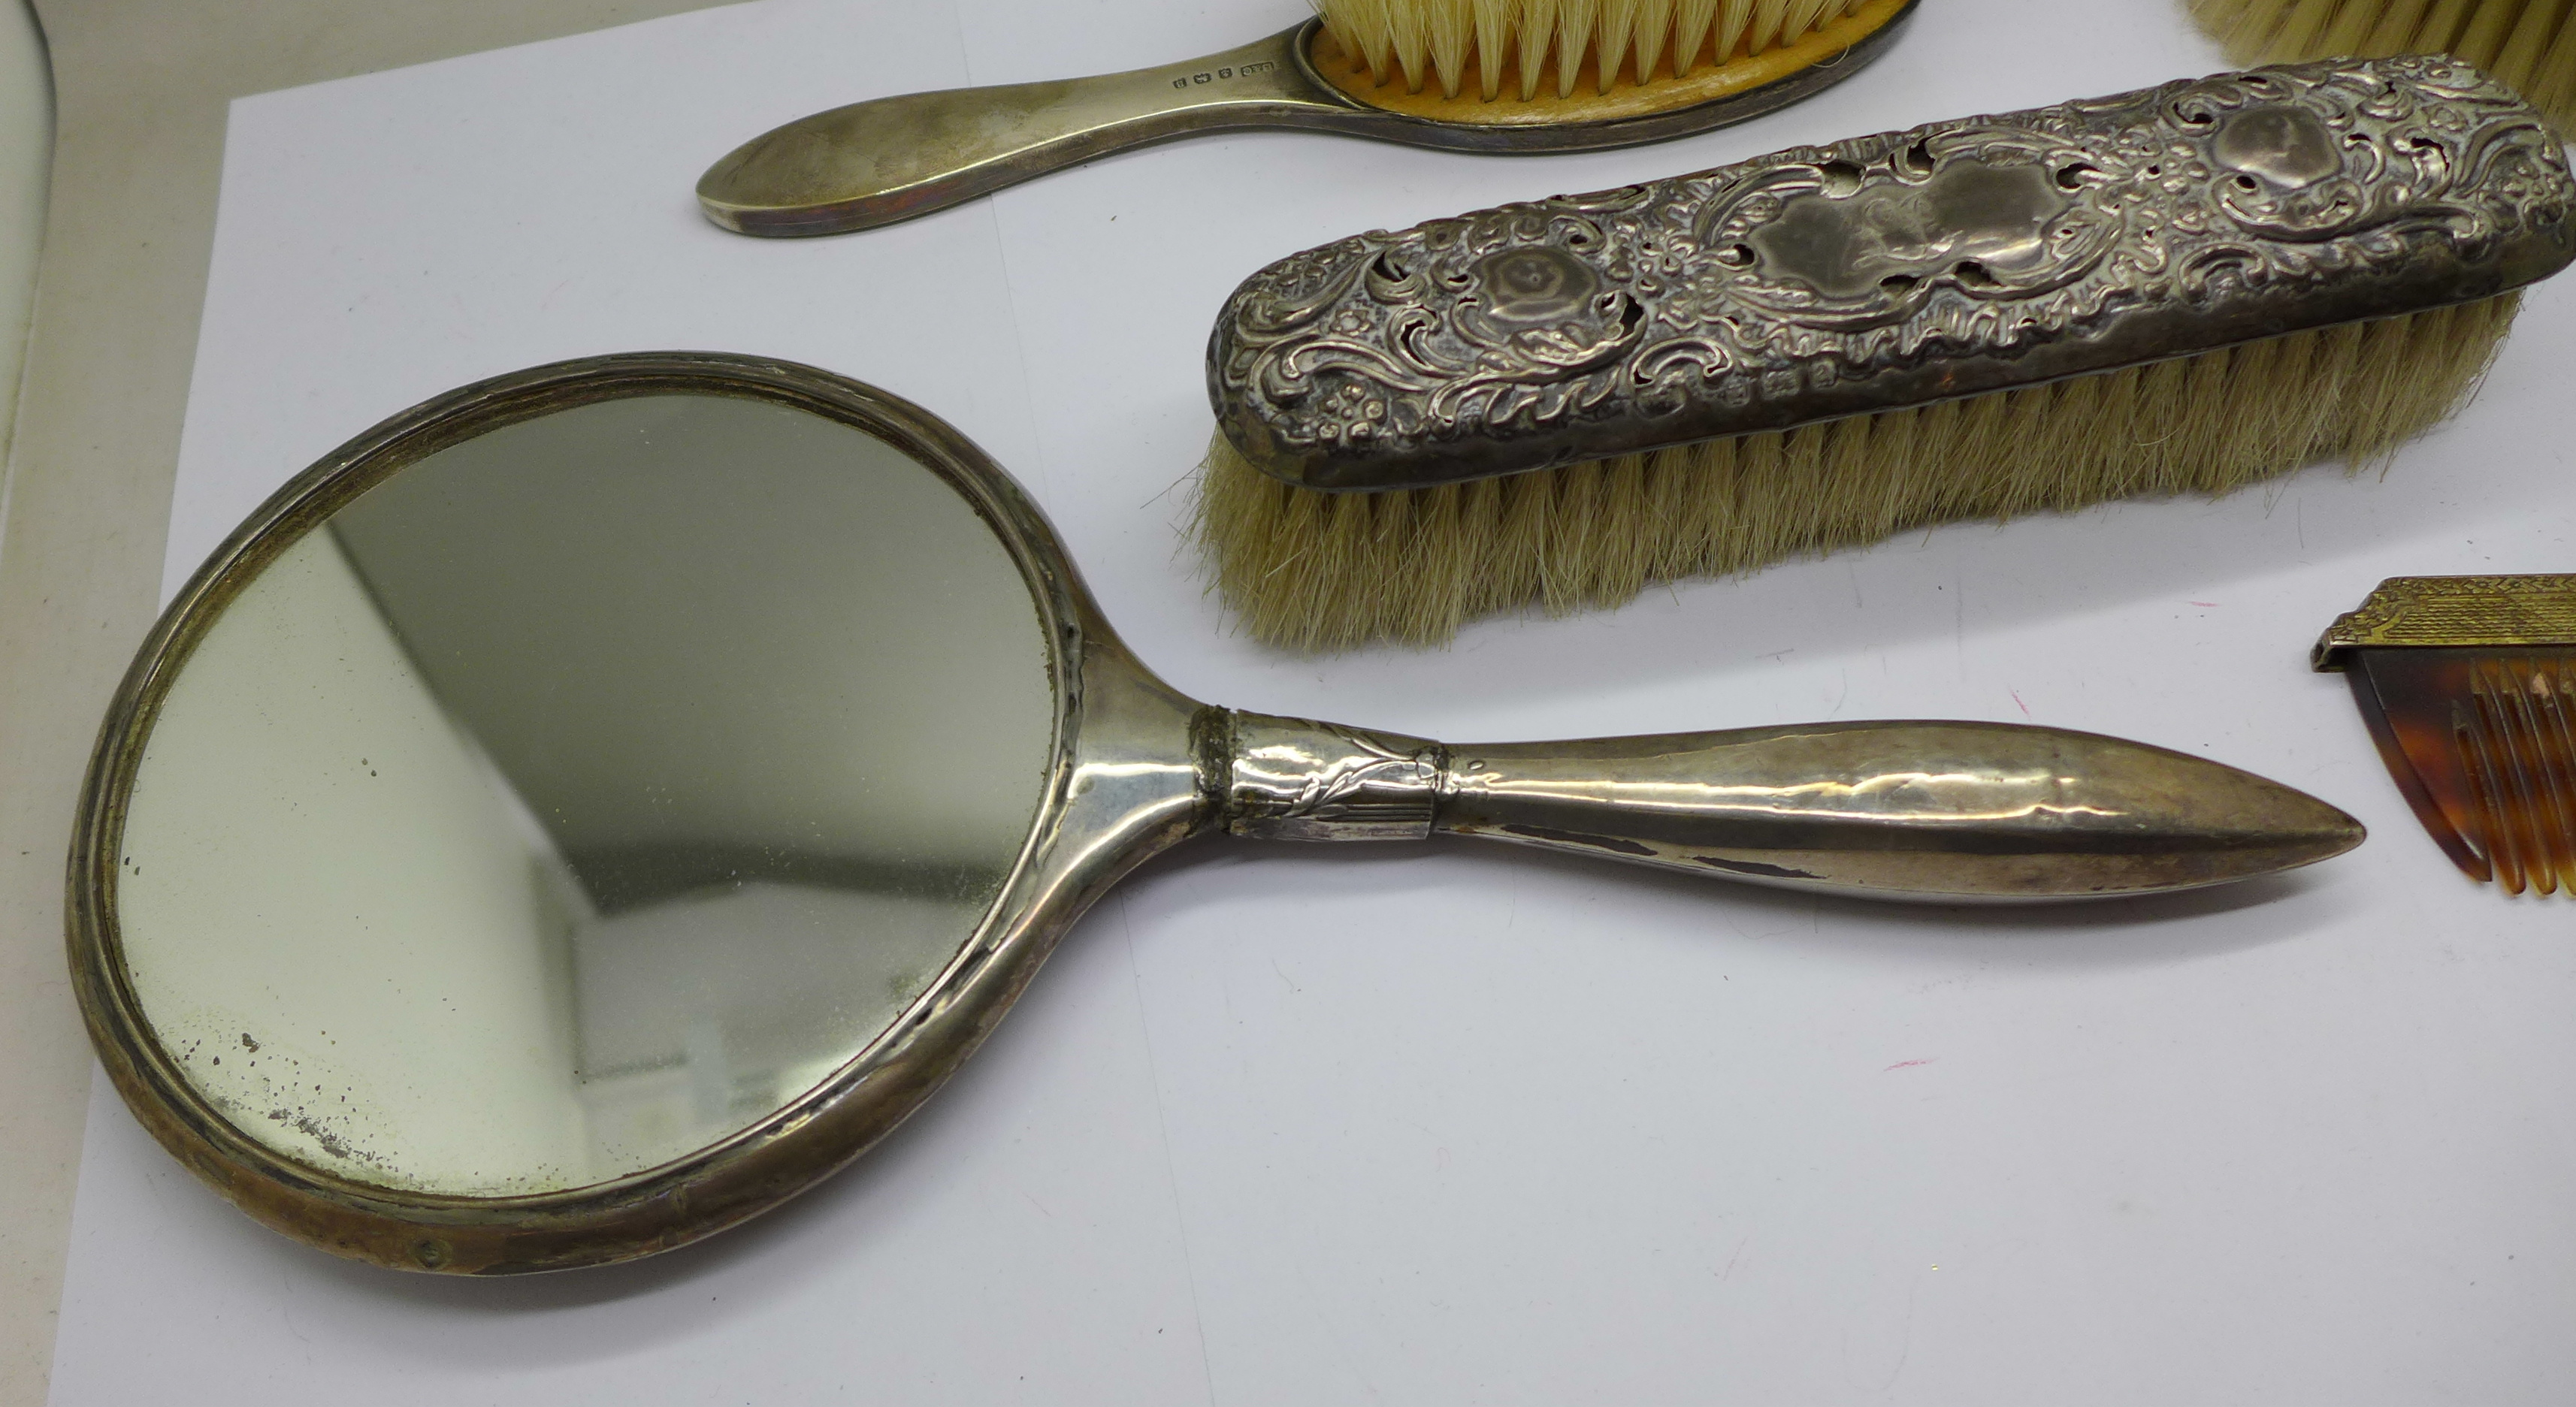 Silver brushes (two cased), comb and a hand mirror - Image 5 of 9